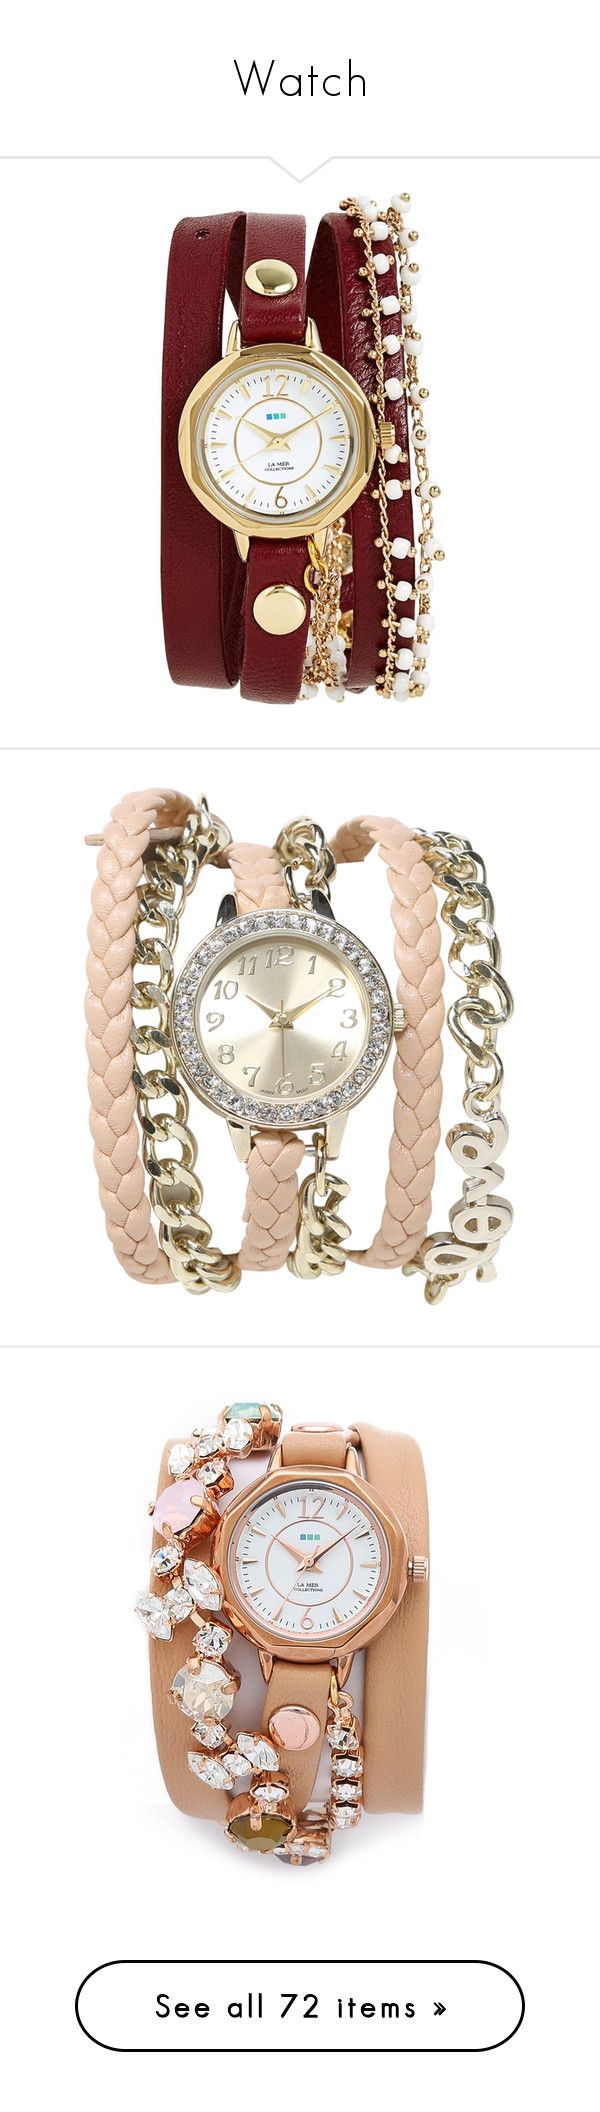 """""""Watch"""" by dorastyles-clxiv ❤ liked on Polyvore featuring watch, jewelry, watches, accessories, bracelets, relogio, burgundy, la mer jewelry, chain link watches and beaded watches"""